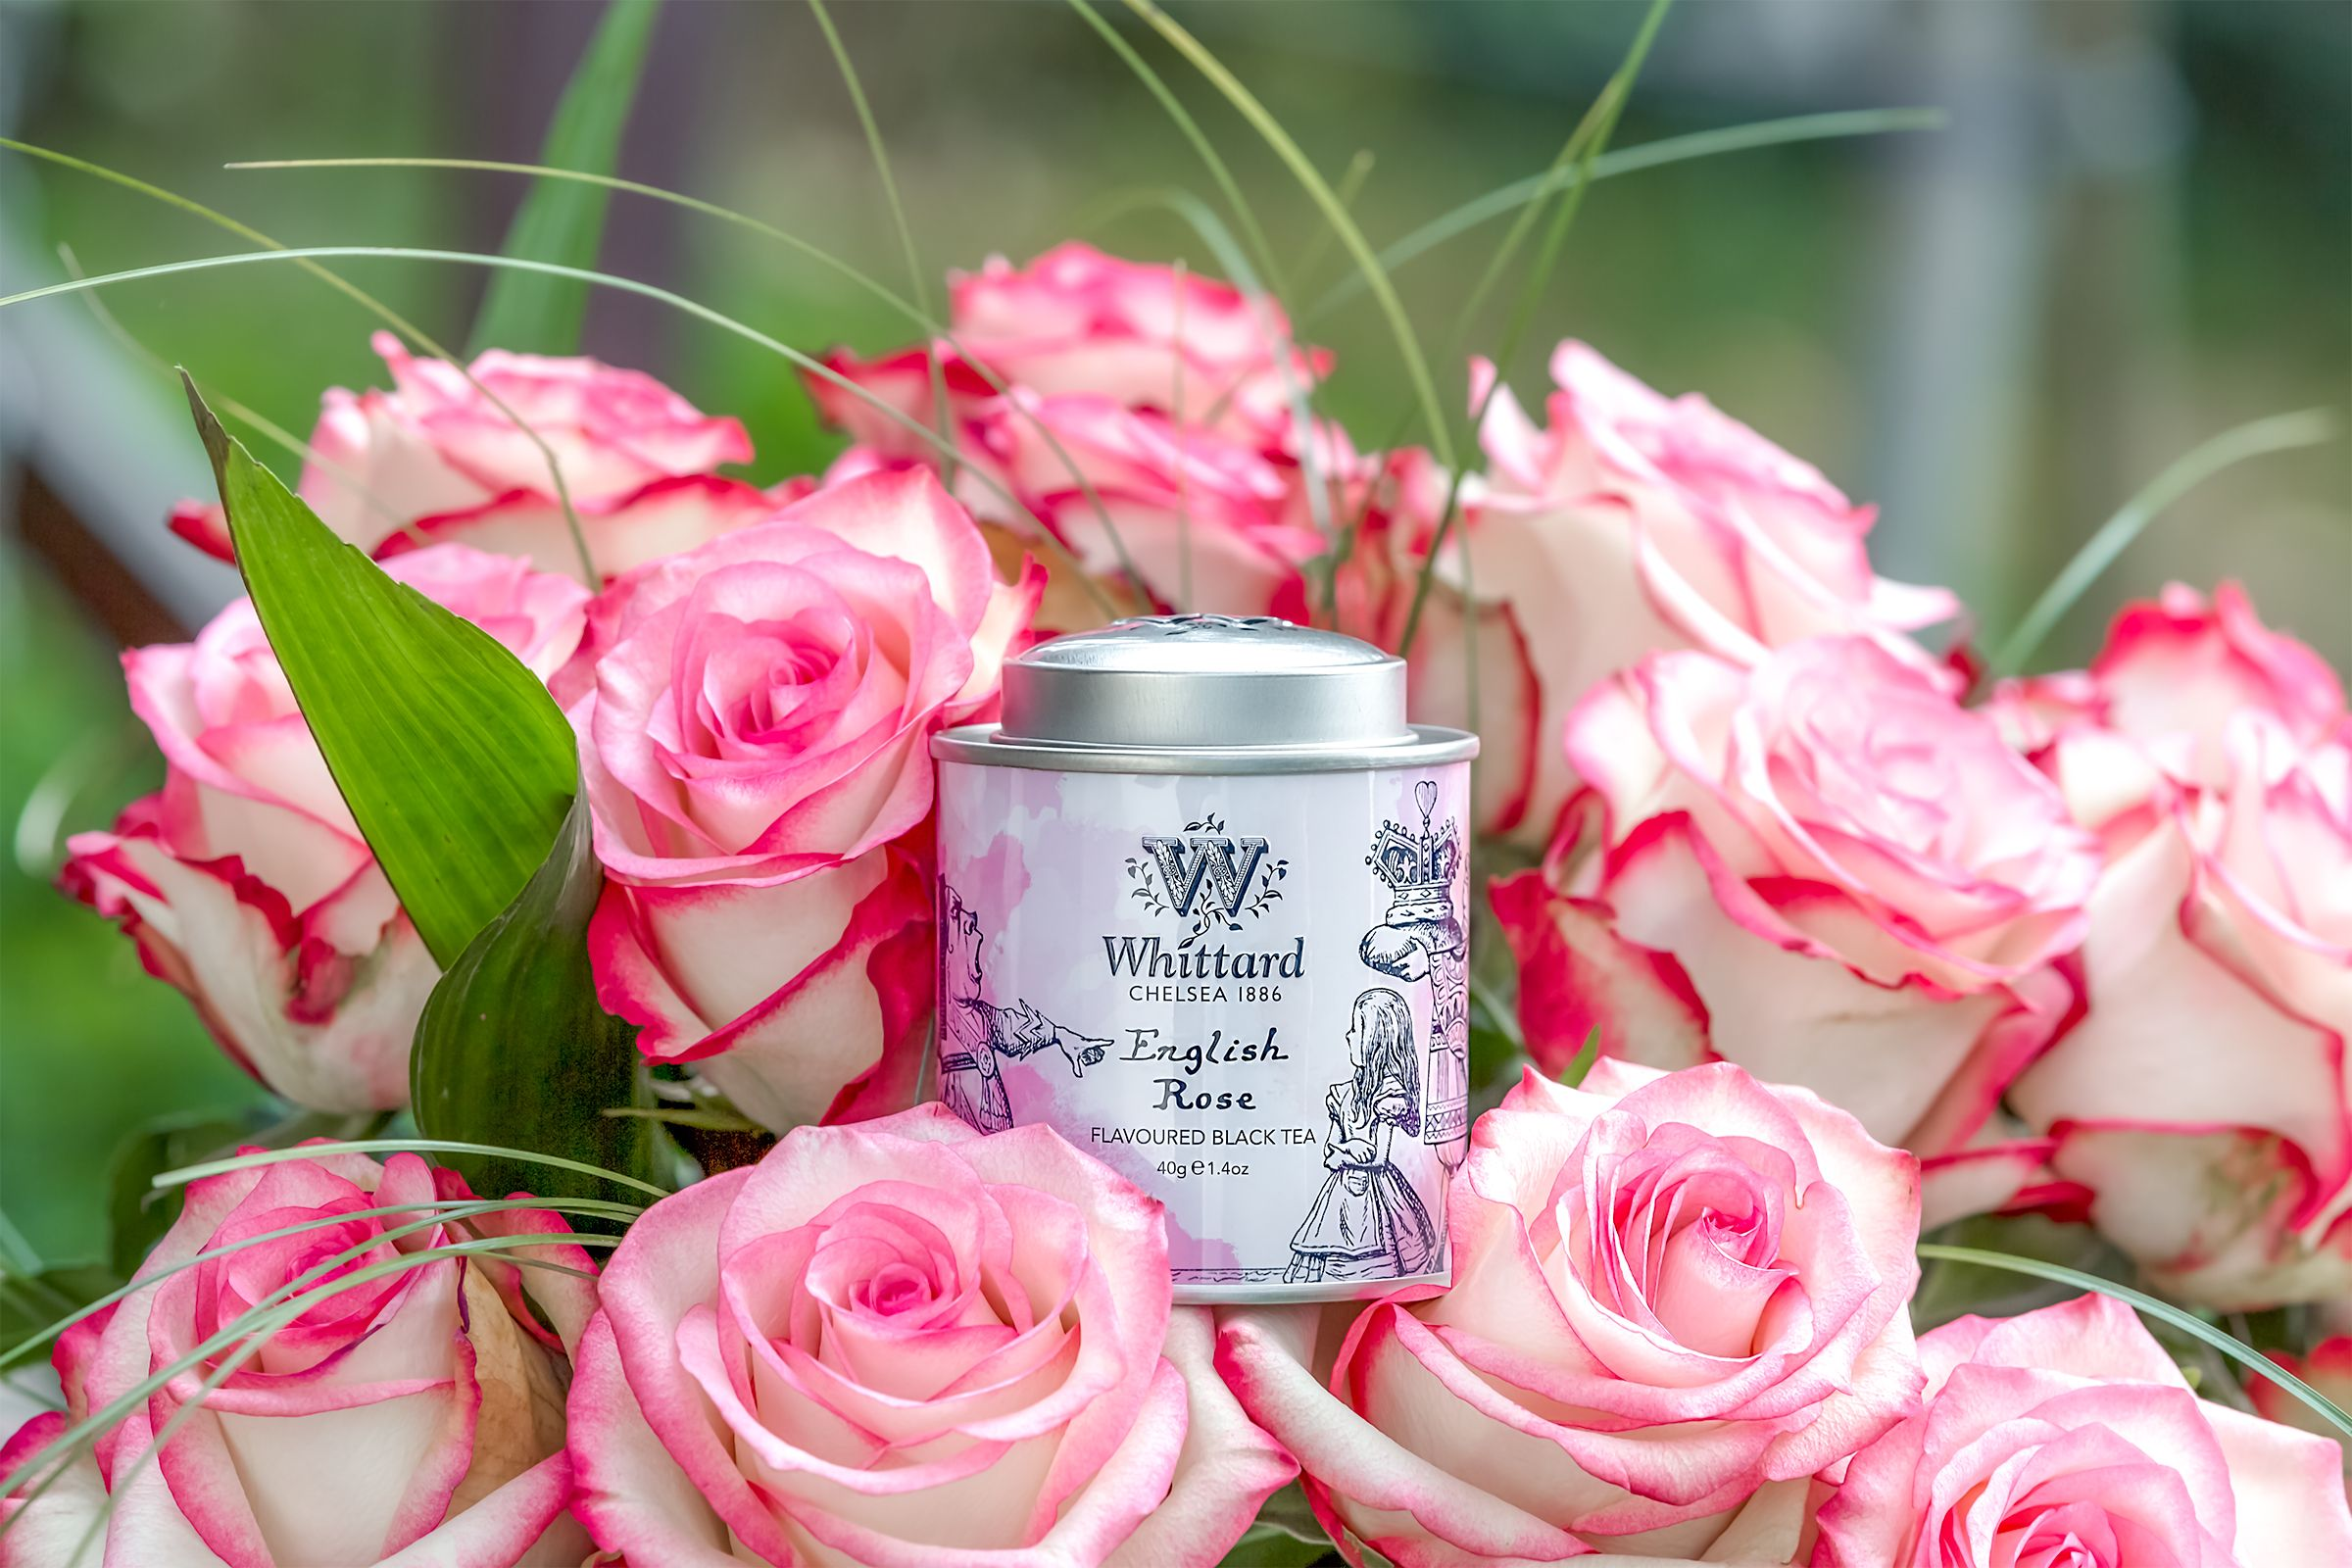 Lifestyle from our garden #tea #tealover #englishrose #whittard #pinkroses #roselover #flowers #teatime #highnoon #productphotography #lifestyle #lifestlyephotography #flavour #teacanister #productplacement #advertising #advertisingphotographer #advertisement #werbung